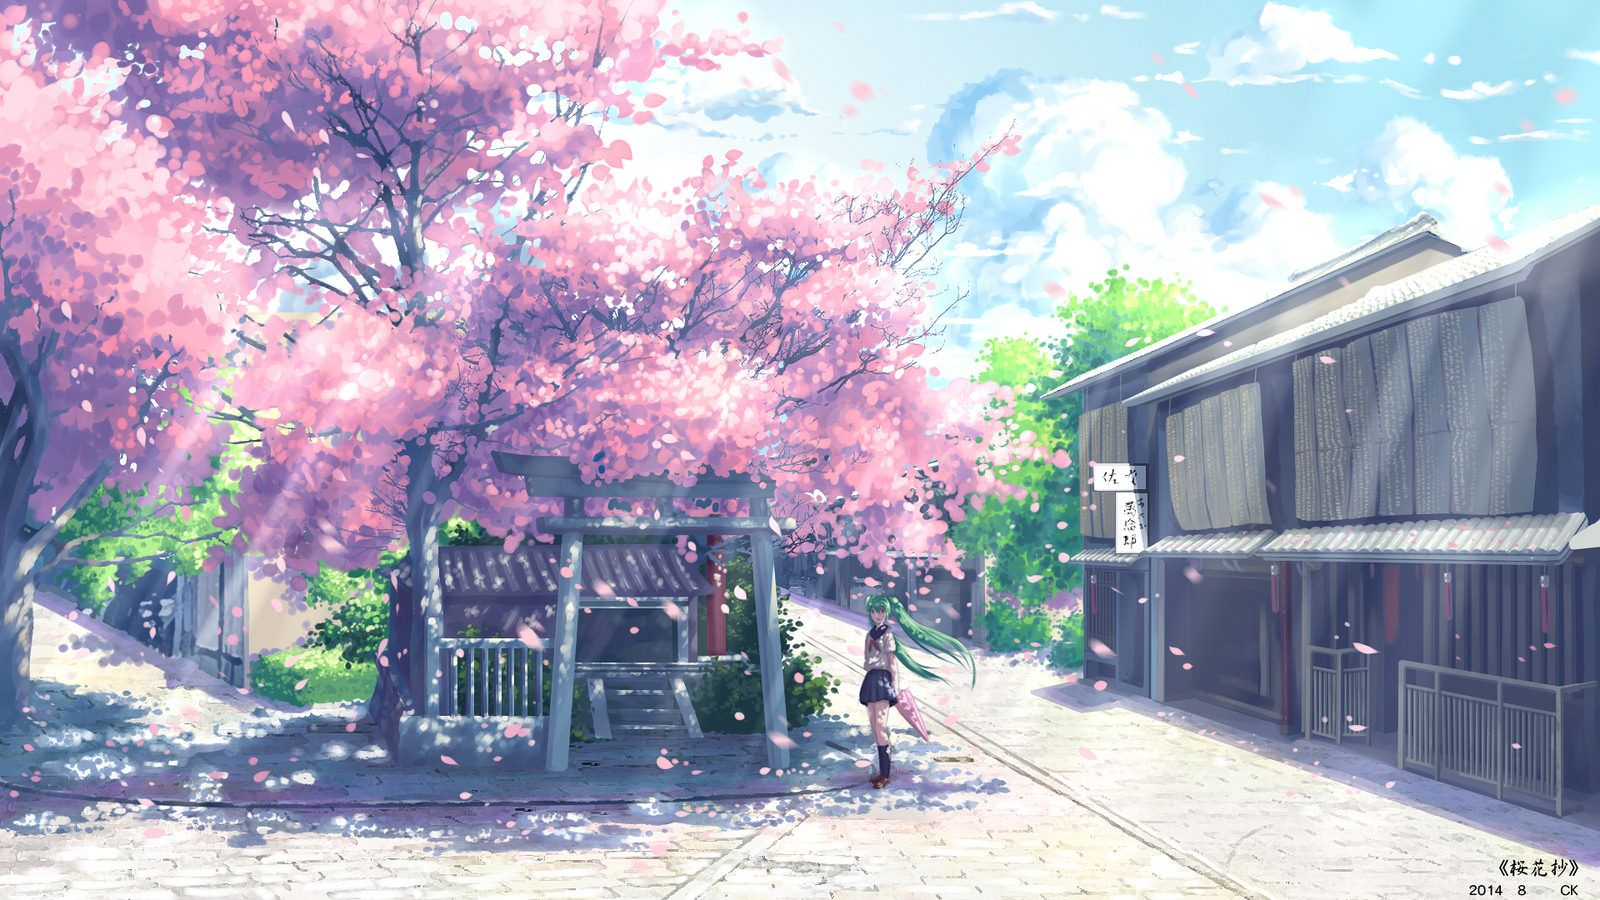 Anime Scenery Cherry Blossoms Background Hd Images 1 28214060692 O Anime Backgrounds Wallpapers Anime Scenery Anime Cherry Blossom